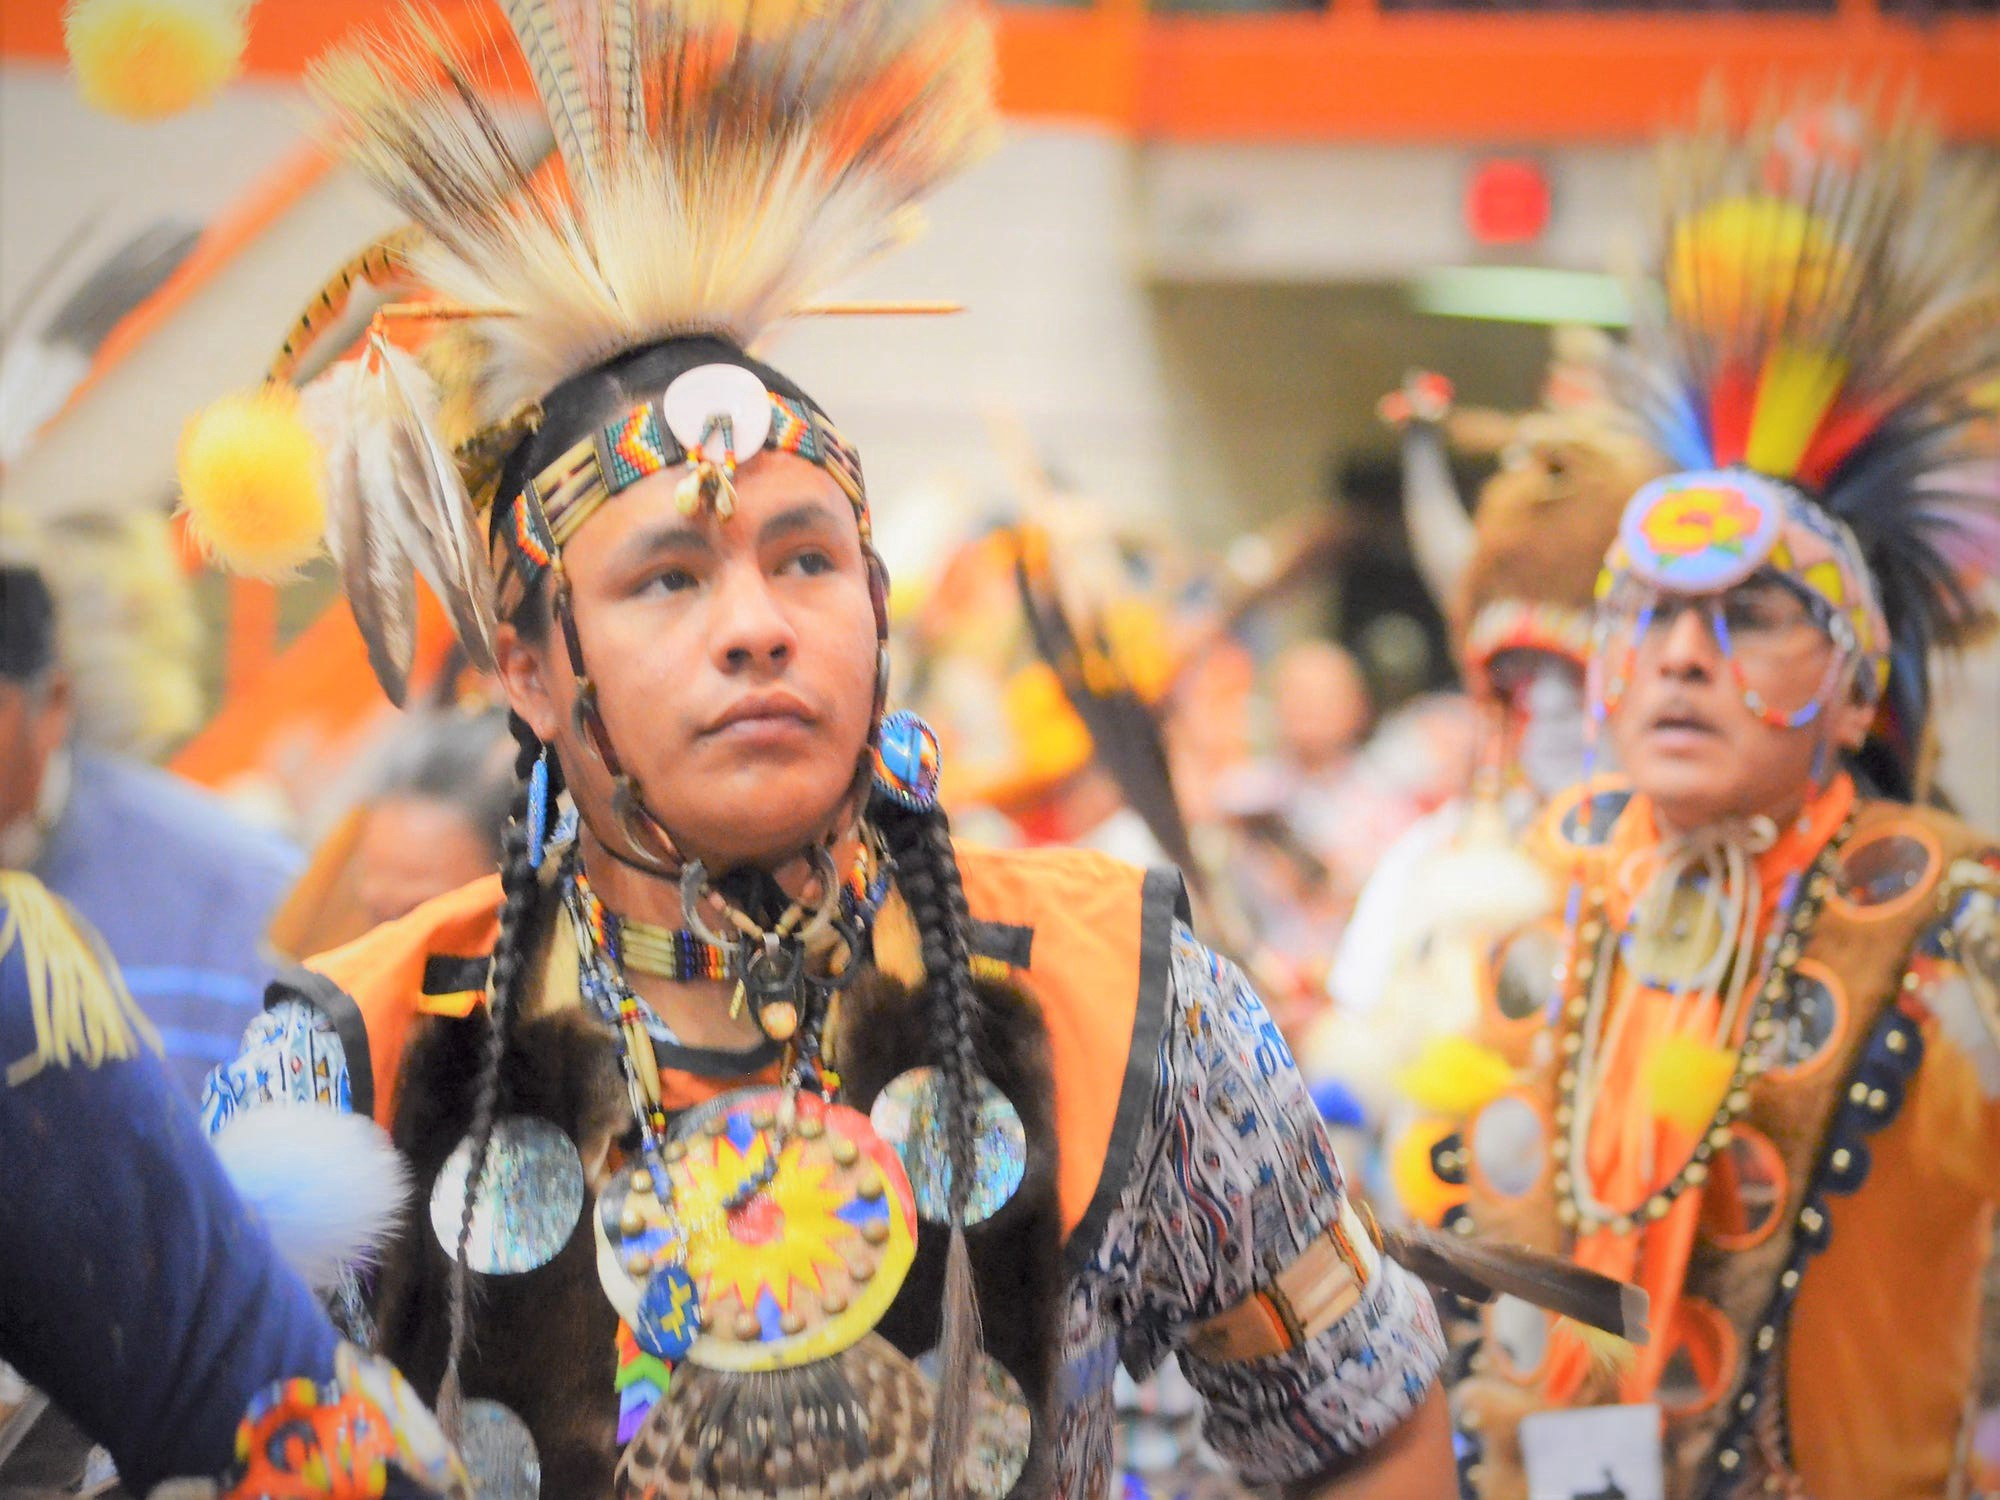 Siksika and Cree dancers perform at the Black Hills Powwow in Rapid City, South Dakota, in 2015.